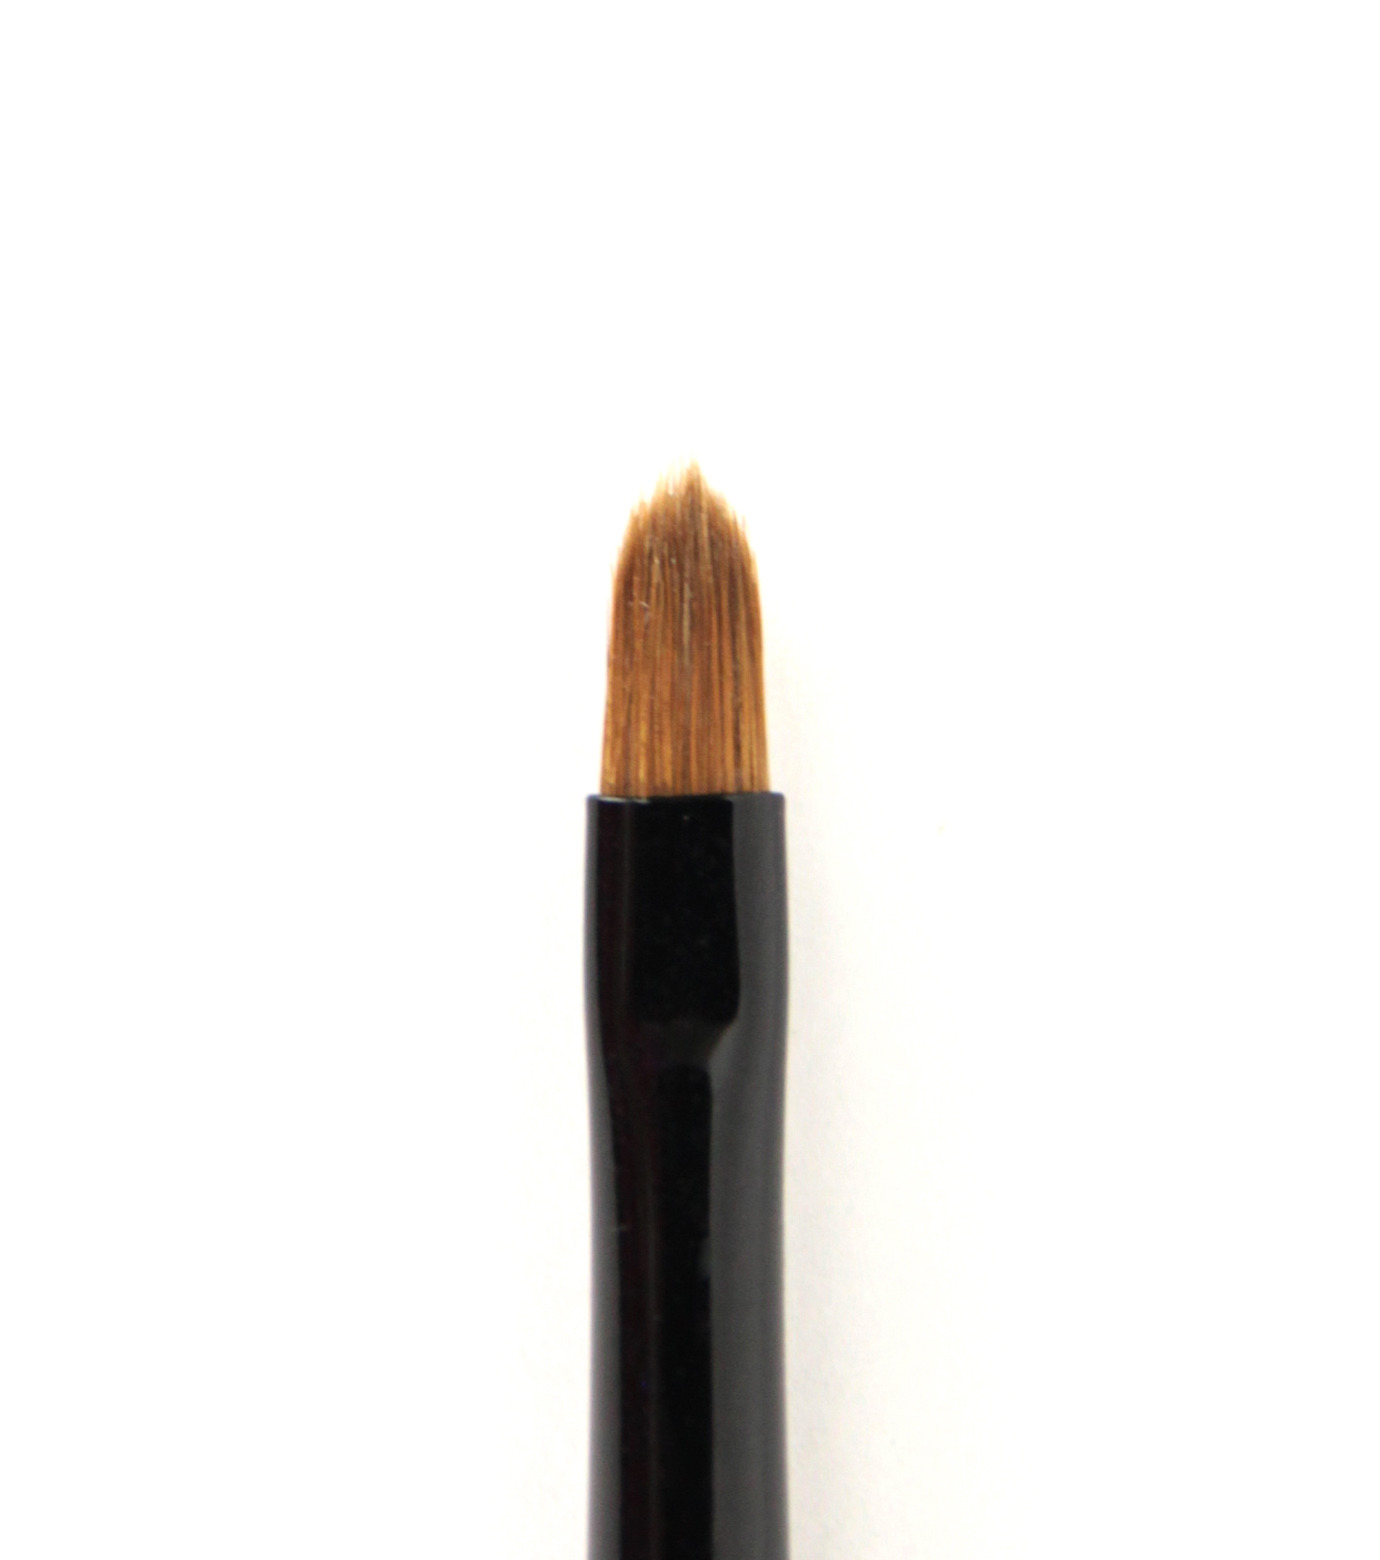 GRANJE(グランジェ)のGel Brush 4 Short Round-BLACK(MAKE-UP/MAKE-UP)-913-13 拡大詳細画像1